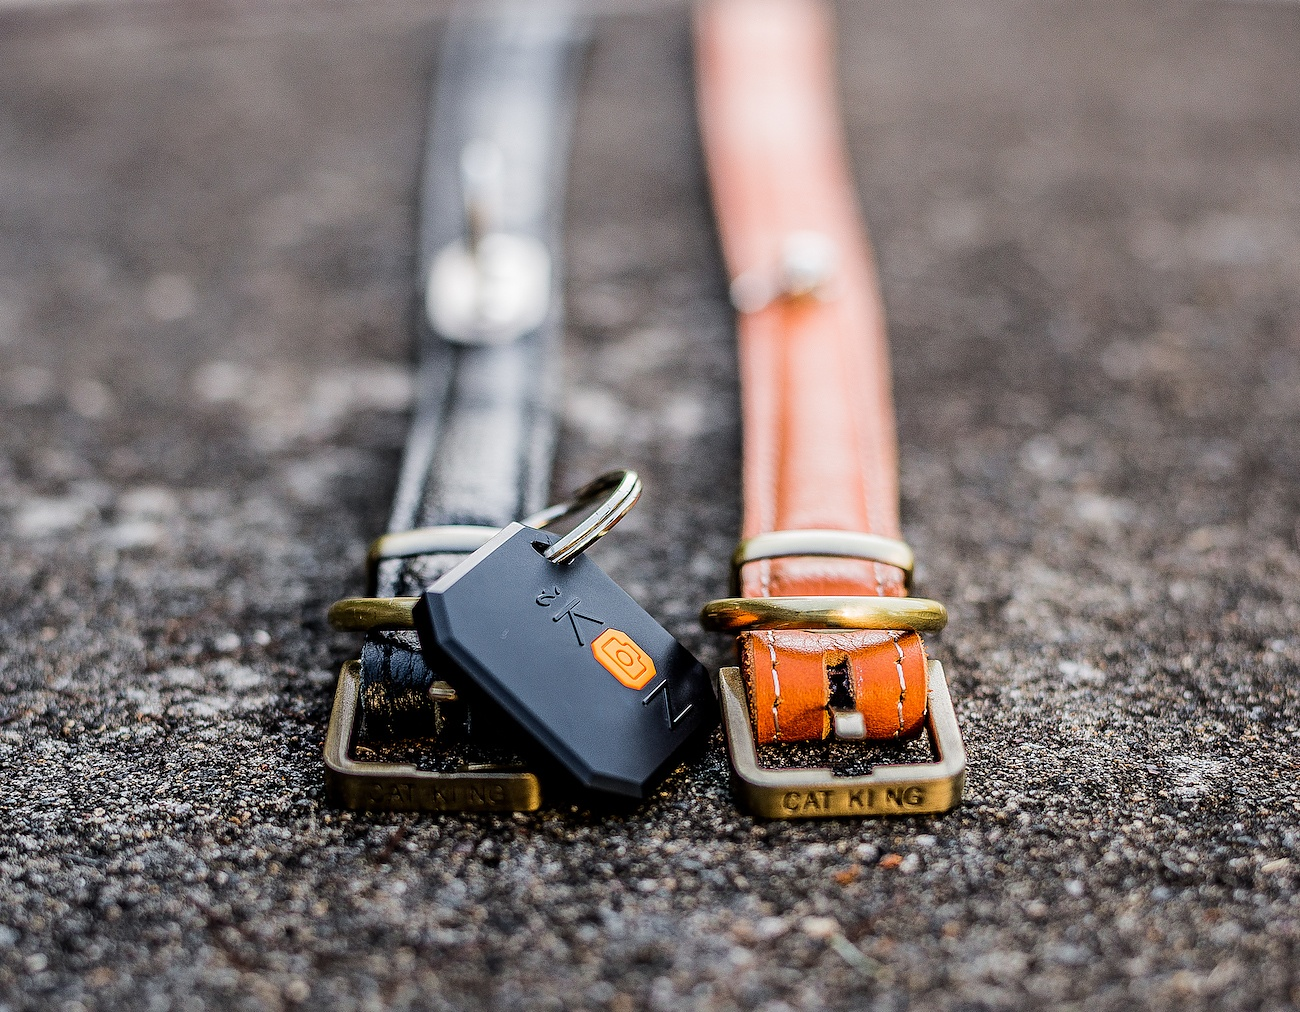 iKON Tracker – The Ultimate Tracking and SELFIE Taking Device